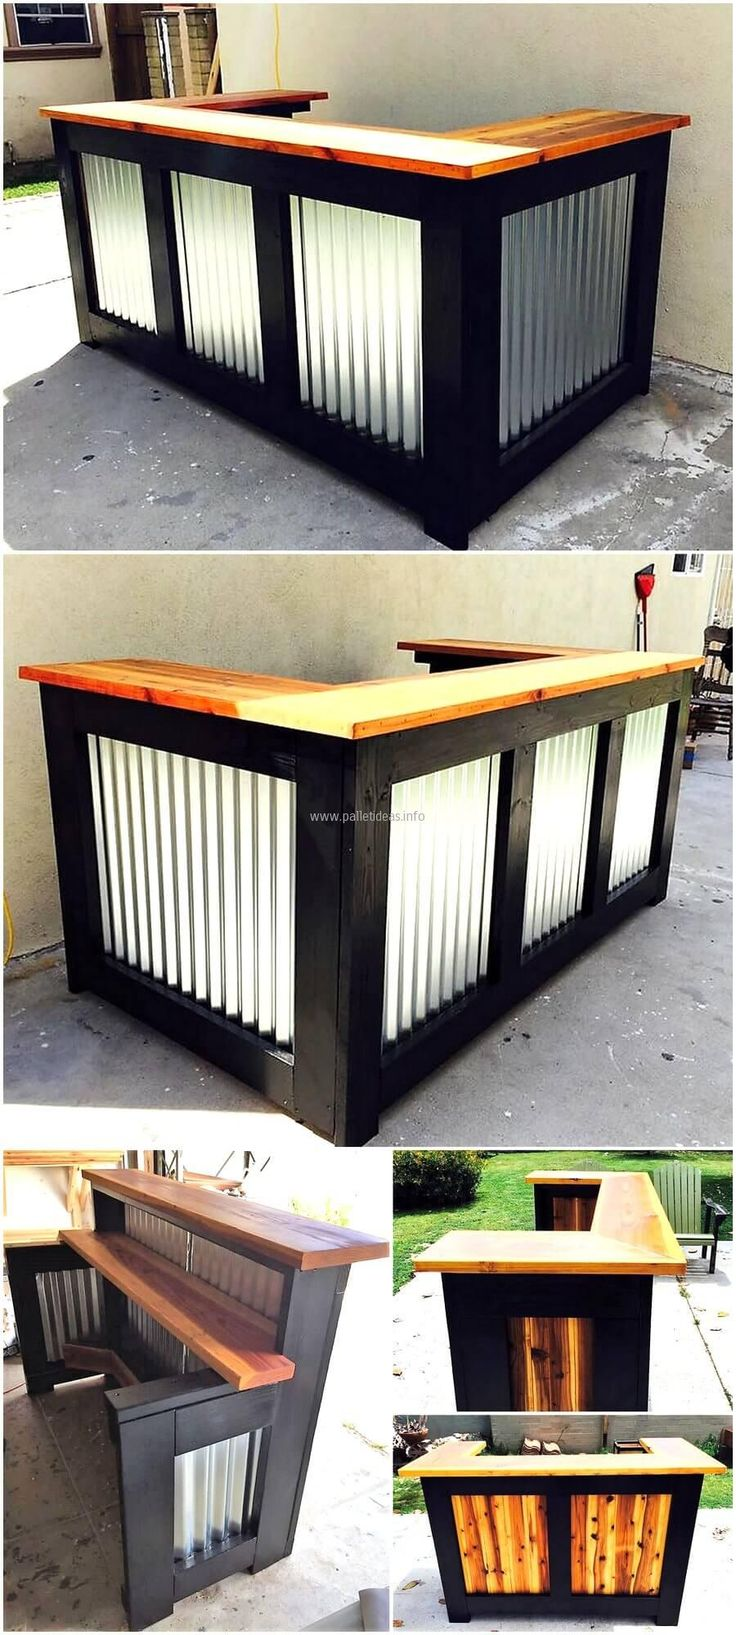 https://i.pinimg.com/736x/a4/08/7b/a4087b49d9b1f02bf8a0e70862b3f5fa--diy-outdoor-pallet-furniture-outdoor-pallet-bar.jpg